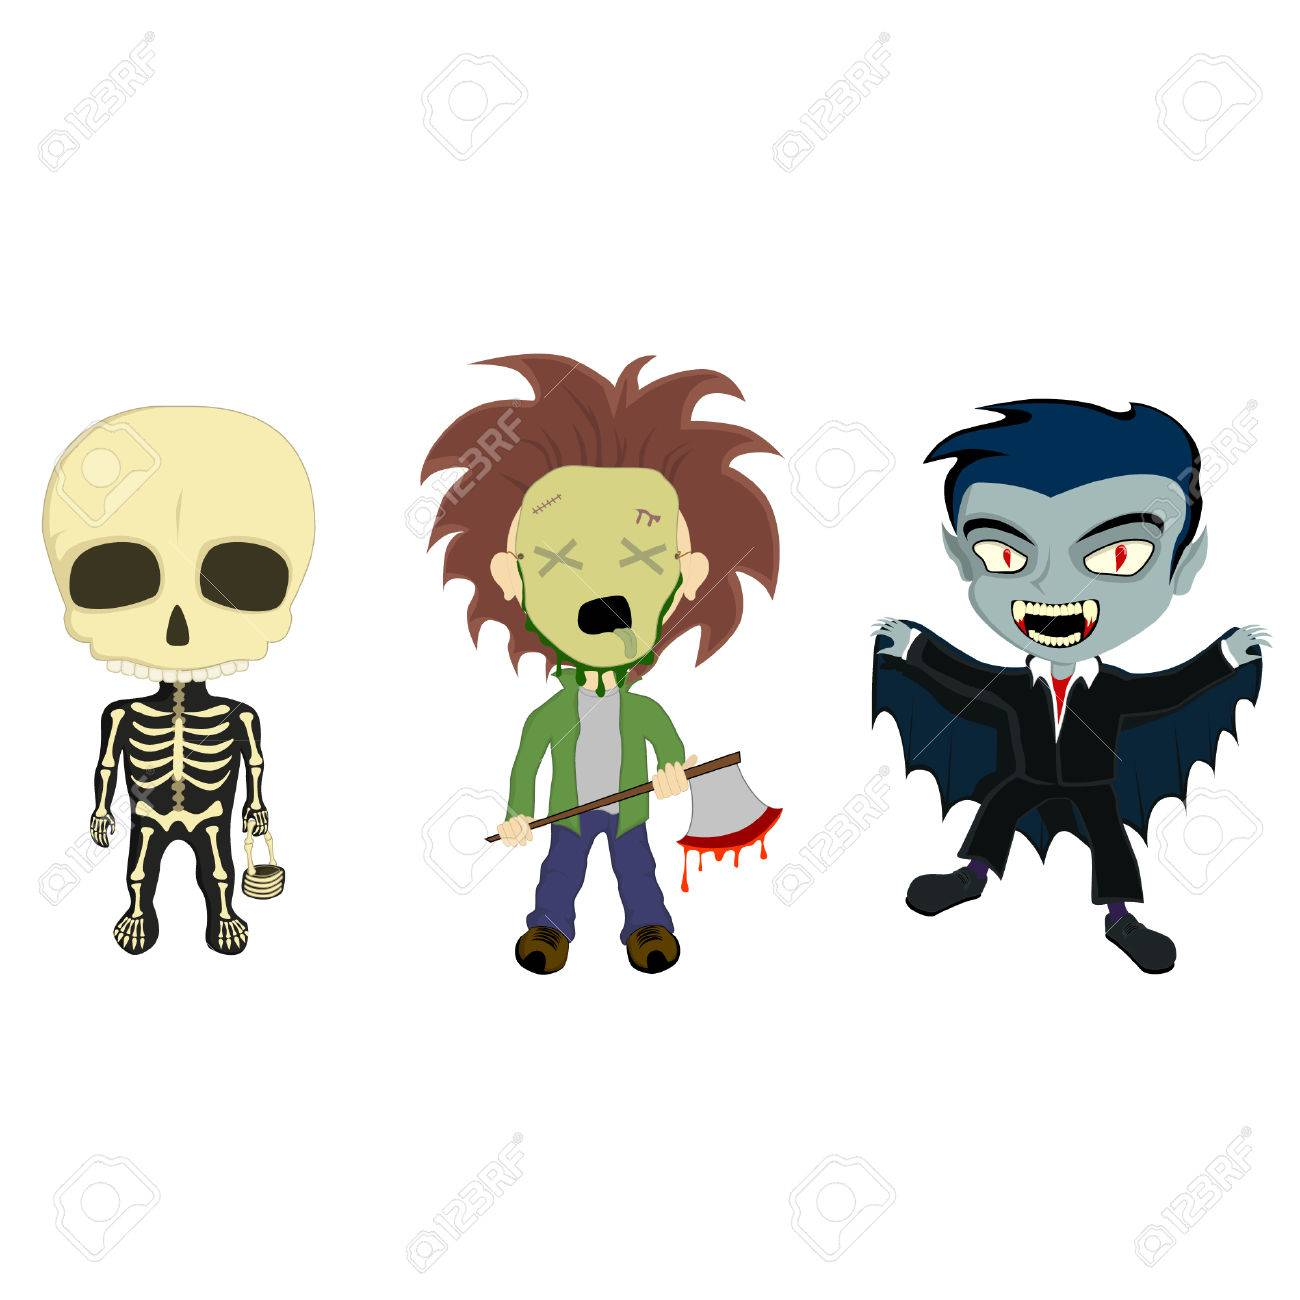 Illustration Of 3 Kids In Halloween Costumes, A Skeleton With ...